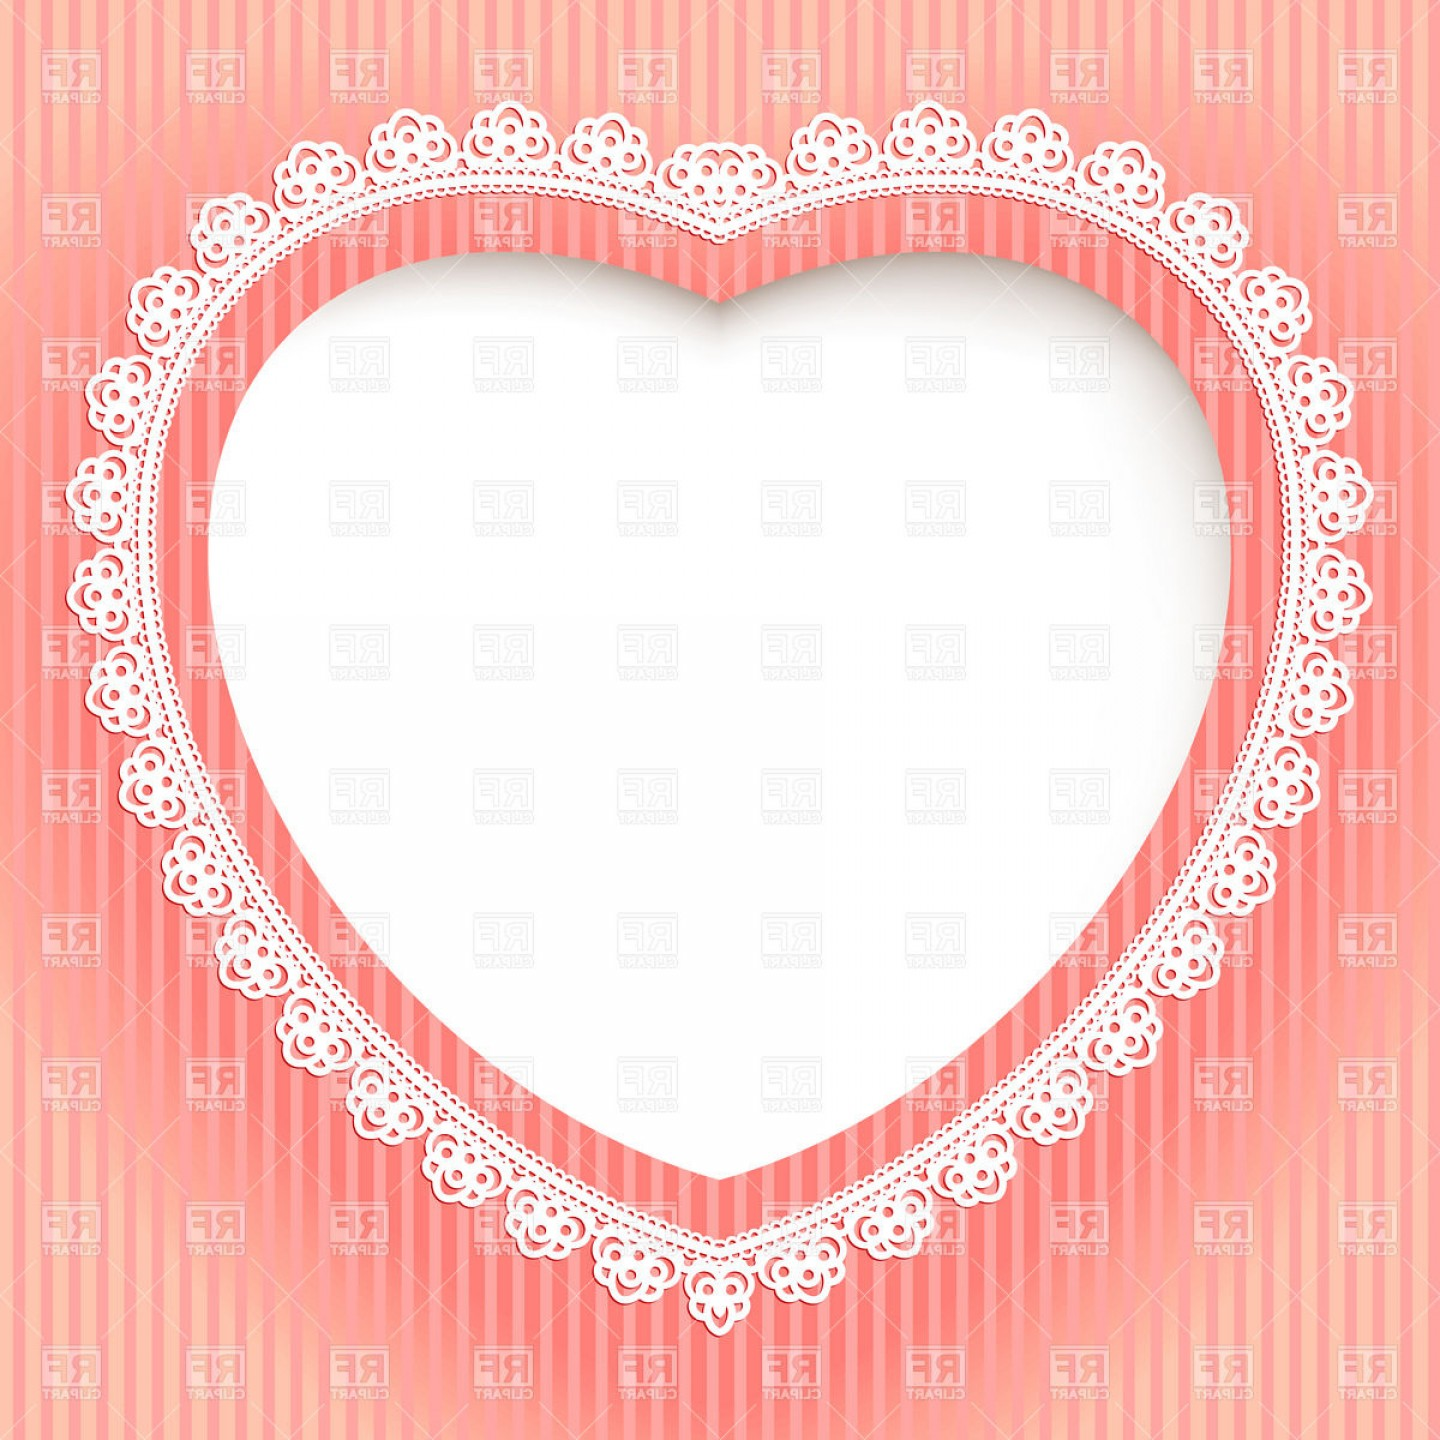 Heart Card Vector: Decorative Heart Shaped Lace Frame Festive Card Template Vector Clipart